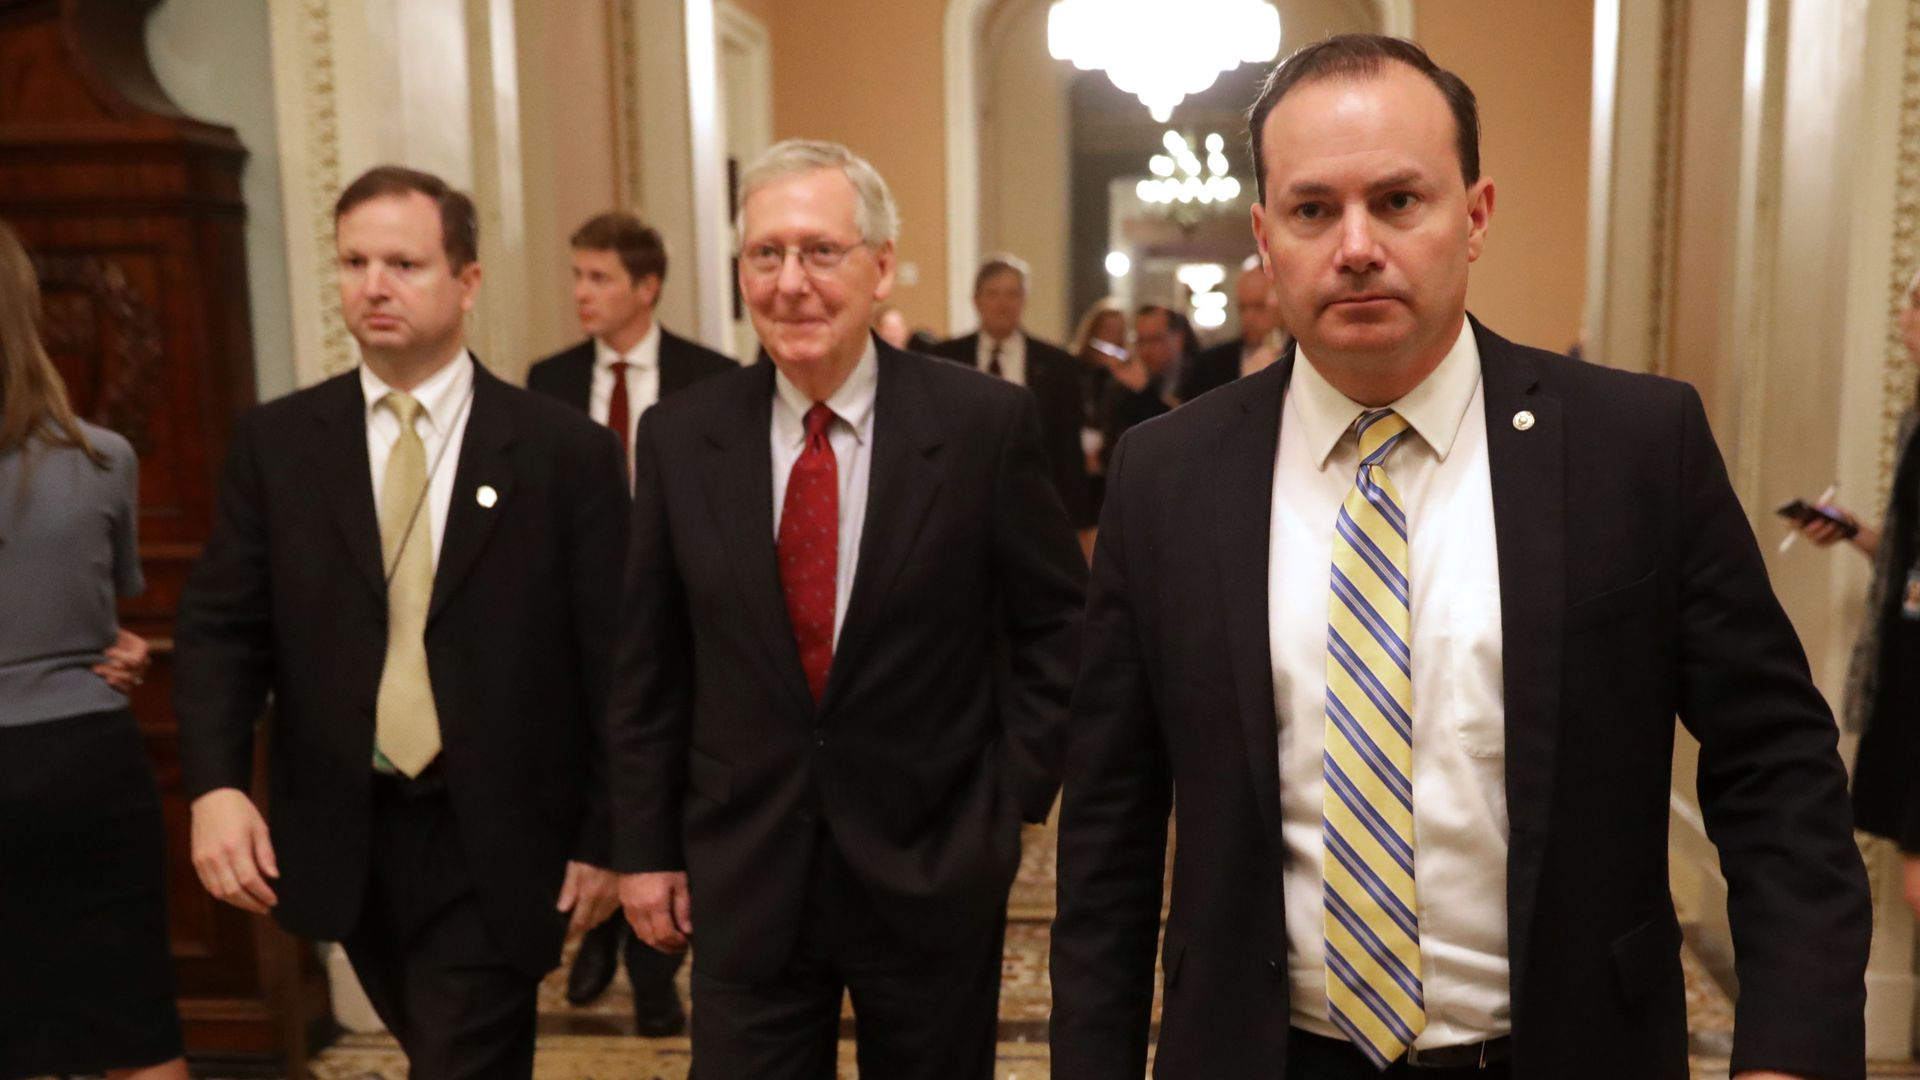 Mitch McConnell and Mike Lee walk.